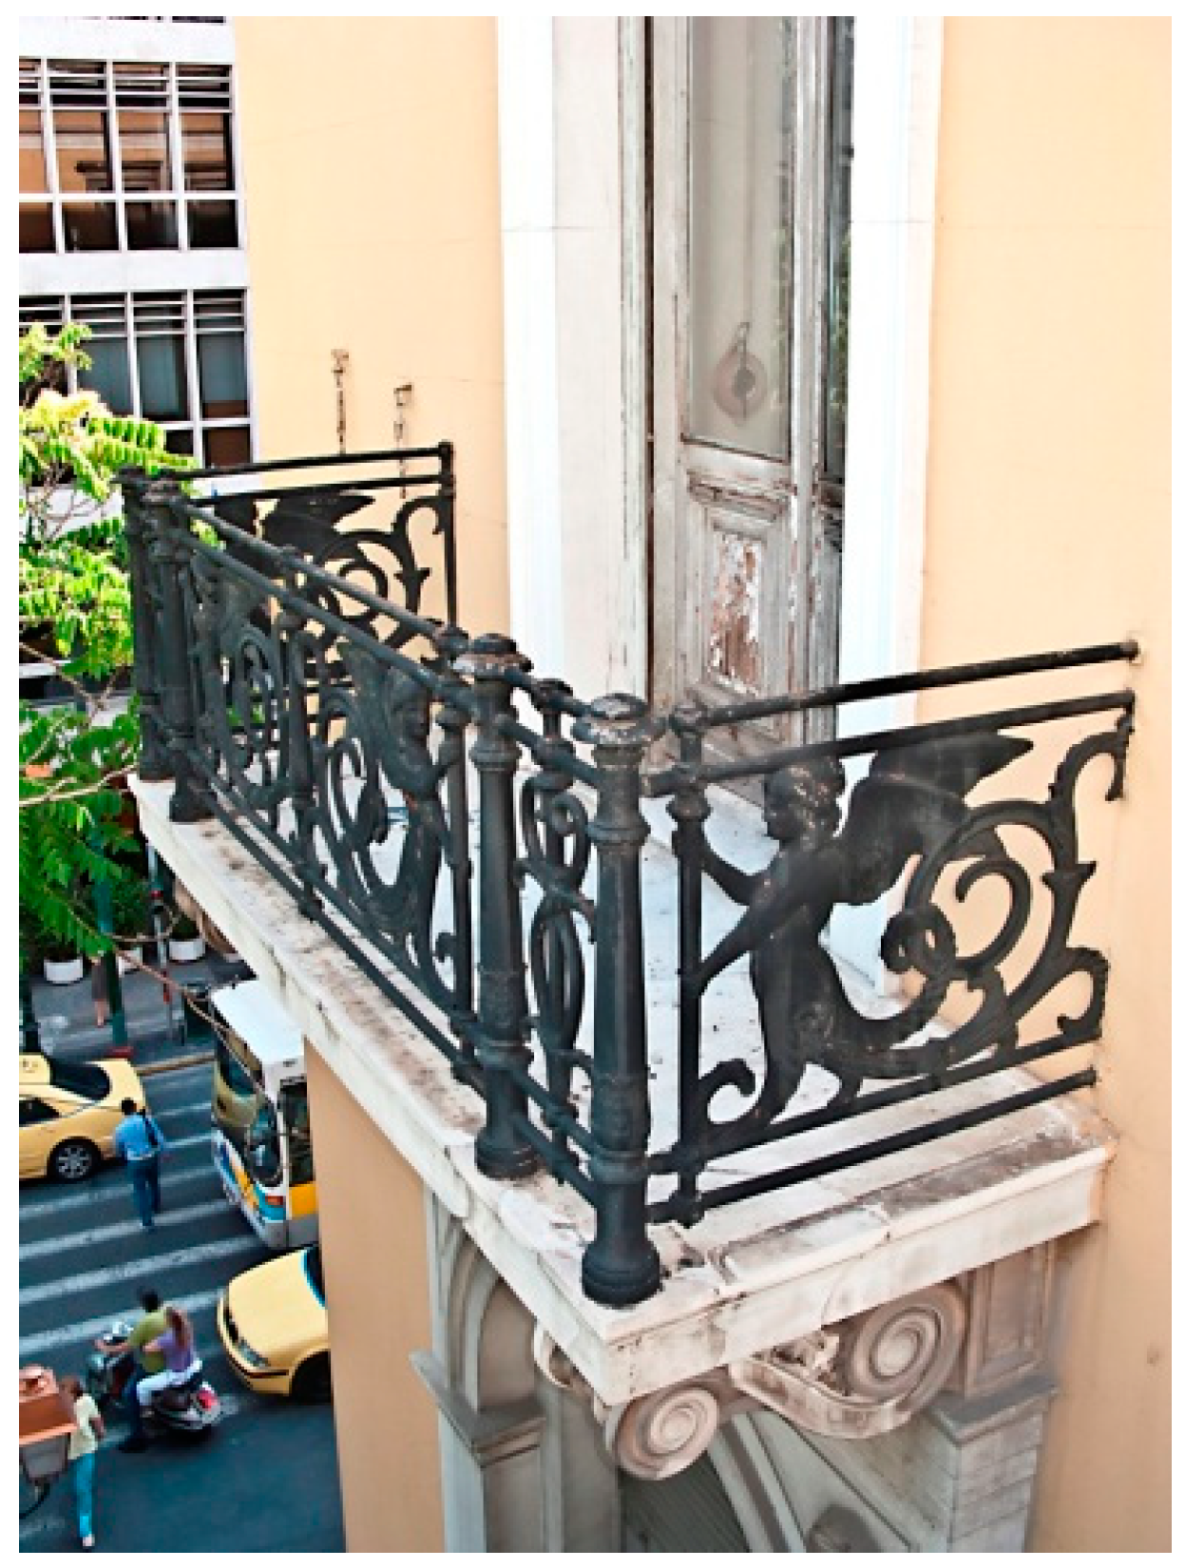 decorative interior wrought iron railing wrought iron.htm heritage free full text heritage preservation policy of civil  heritage preservation policy of civil